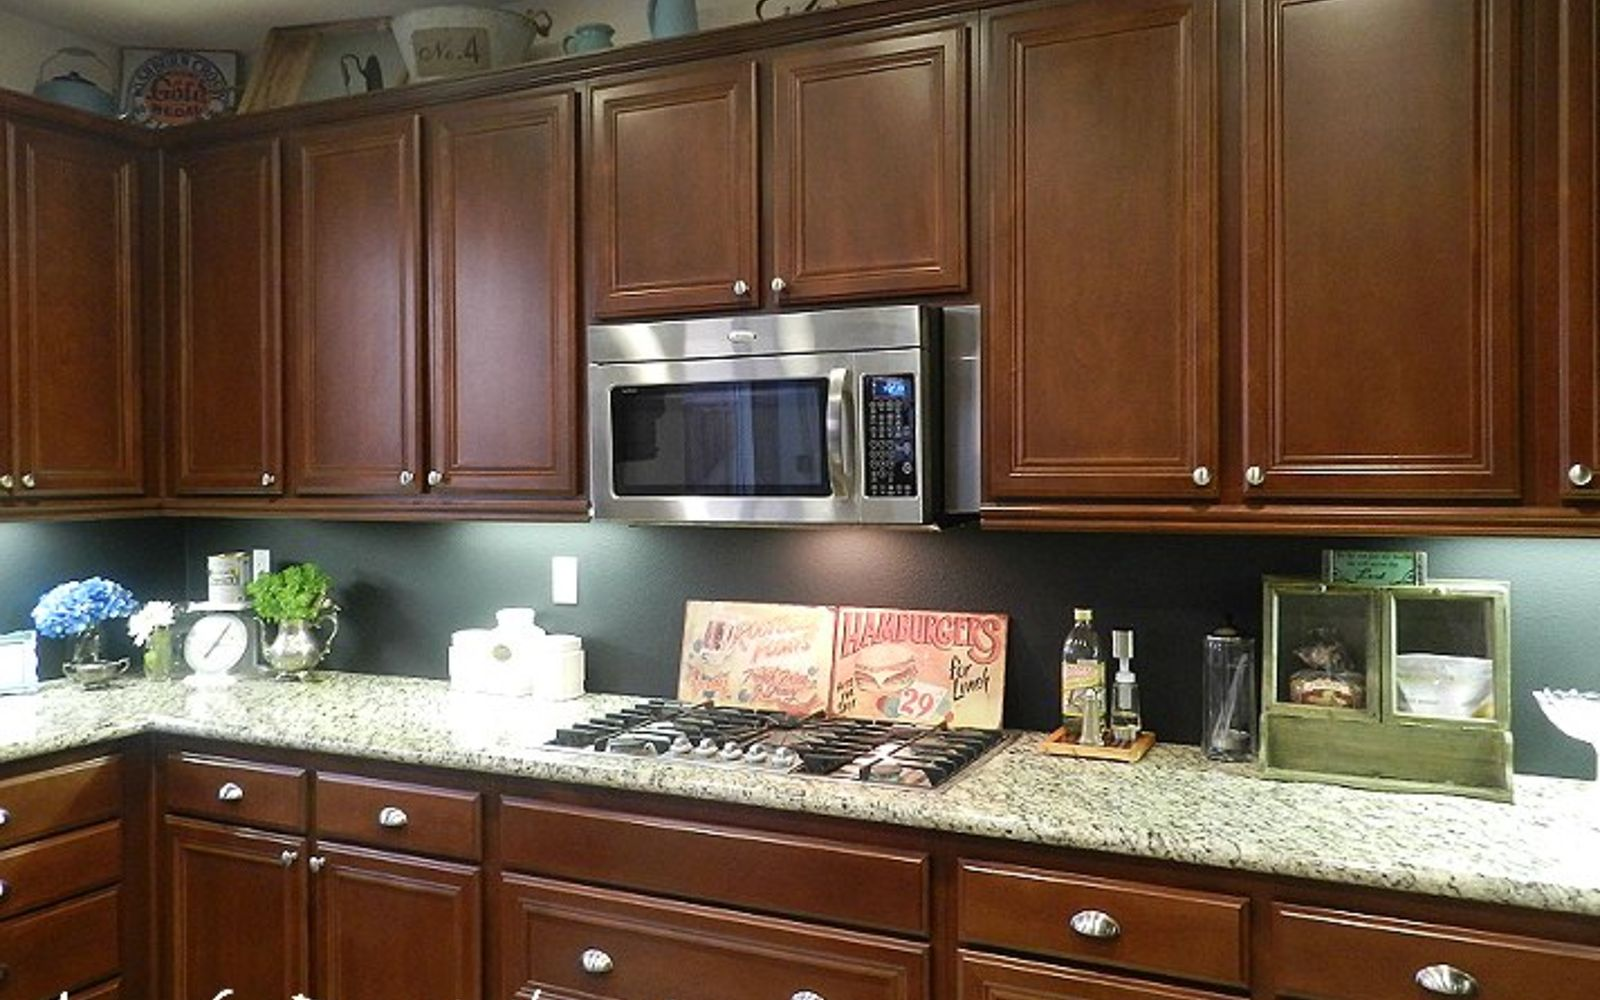 painting kitchen backsplash ideas 13 kitchen backsplash ideas that aren t tile 4020